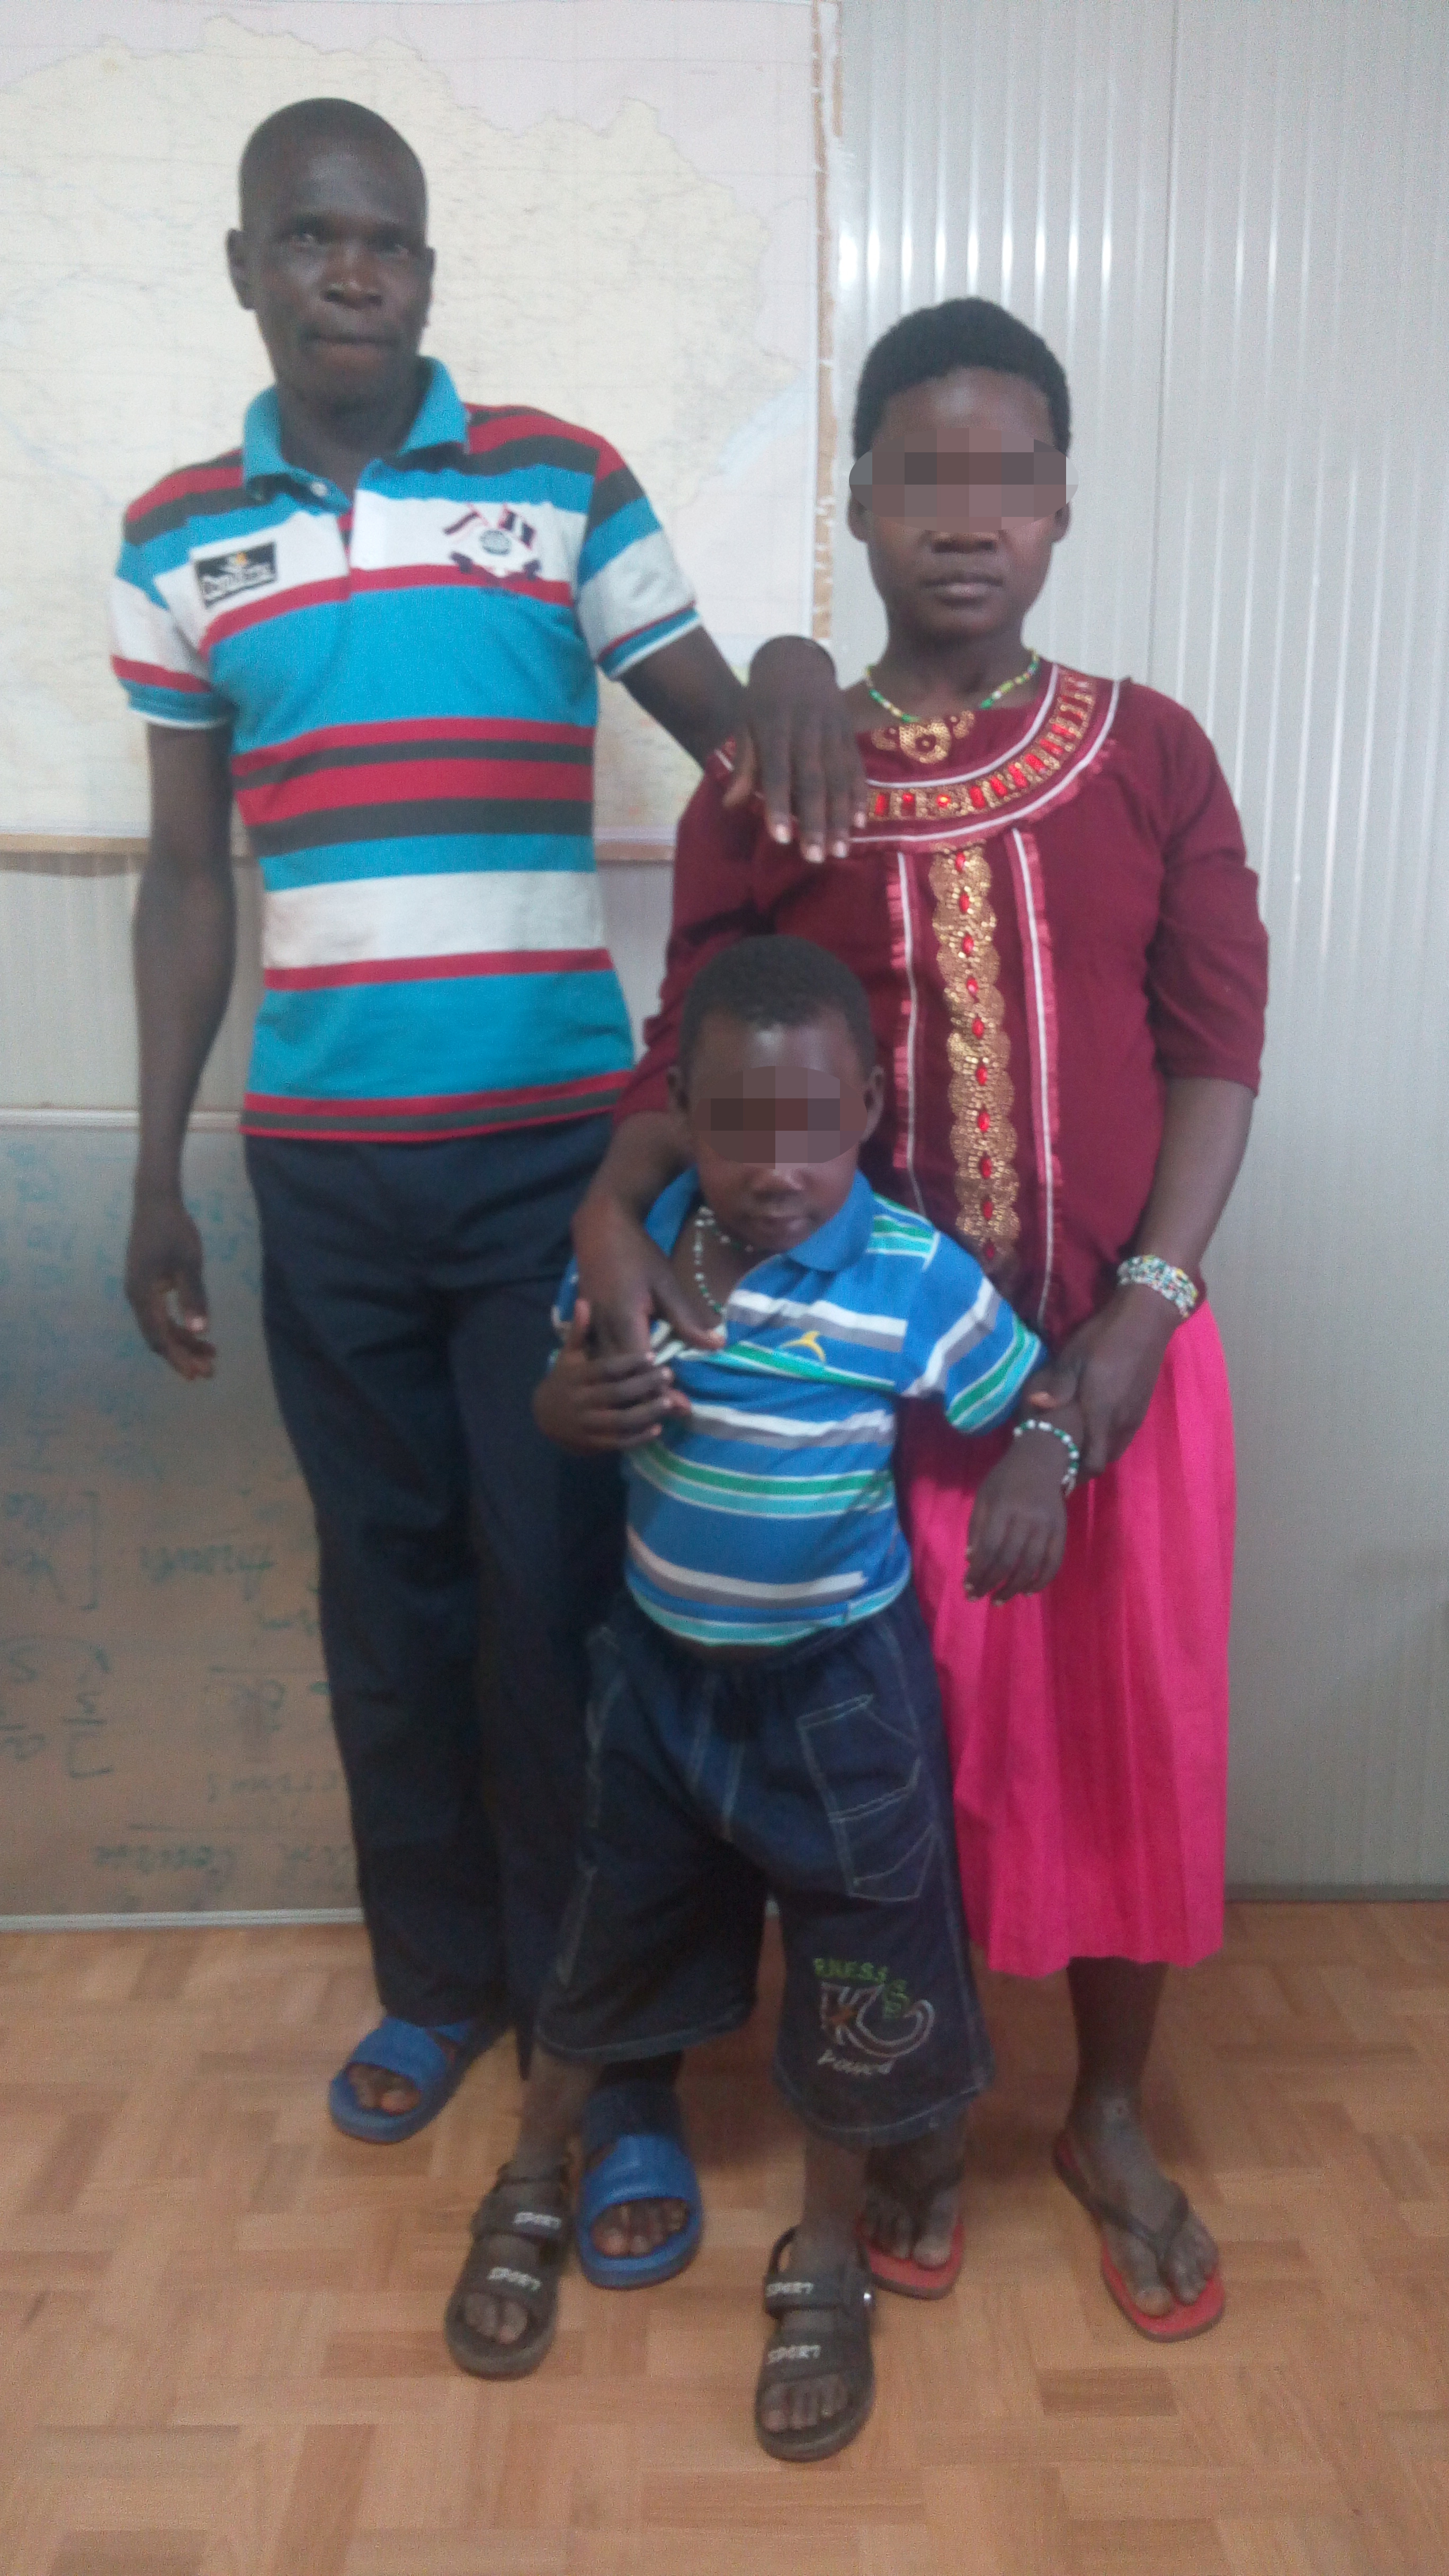 Bosco with the woman and child he escaped LRA captivity with.